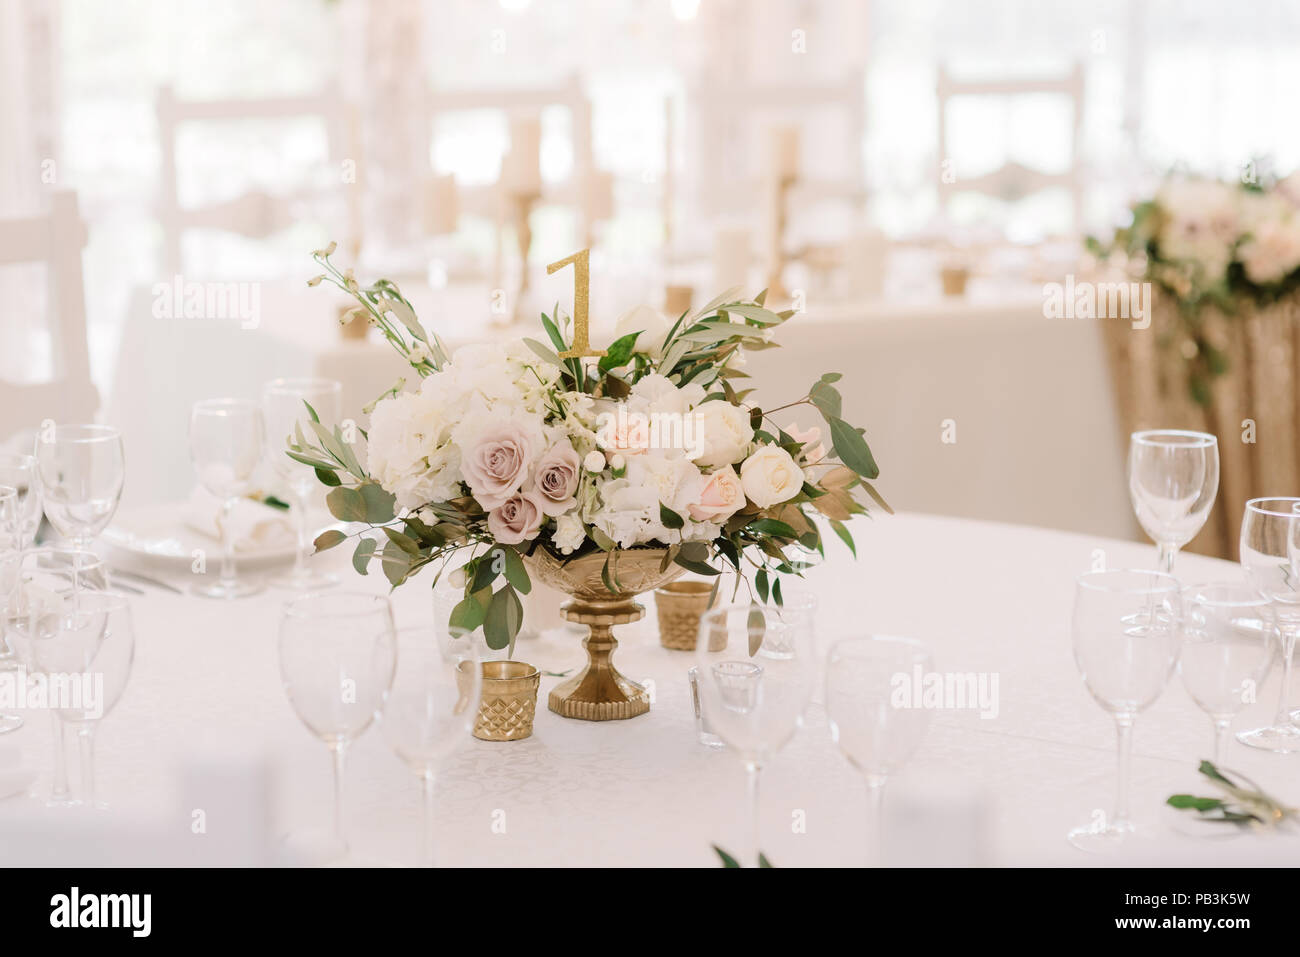 Table Decor With A Festive Bouquet From Fresh Flowers Wedding